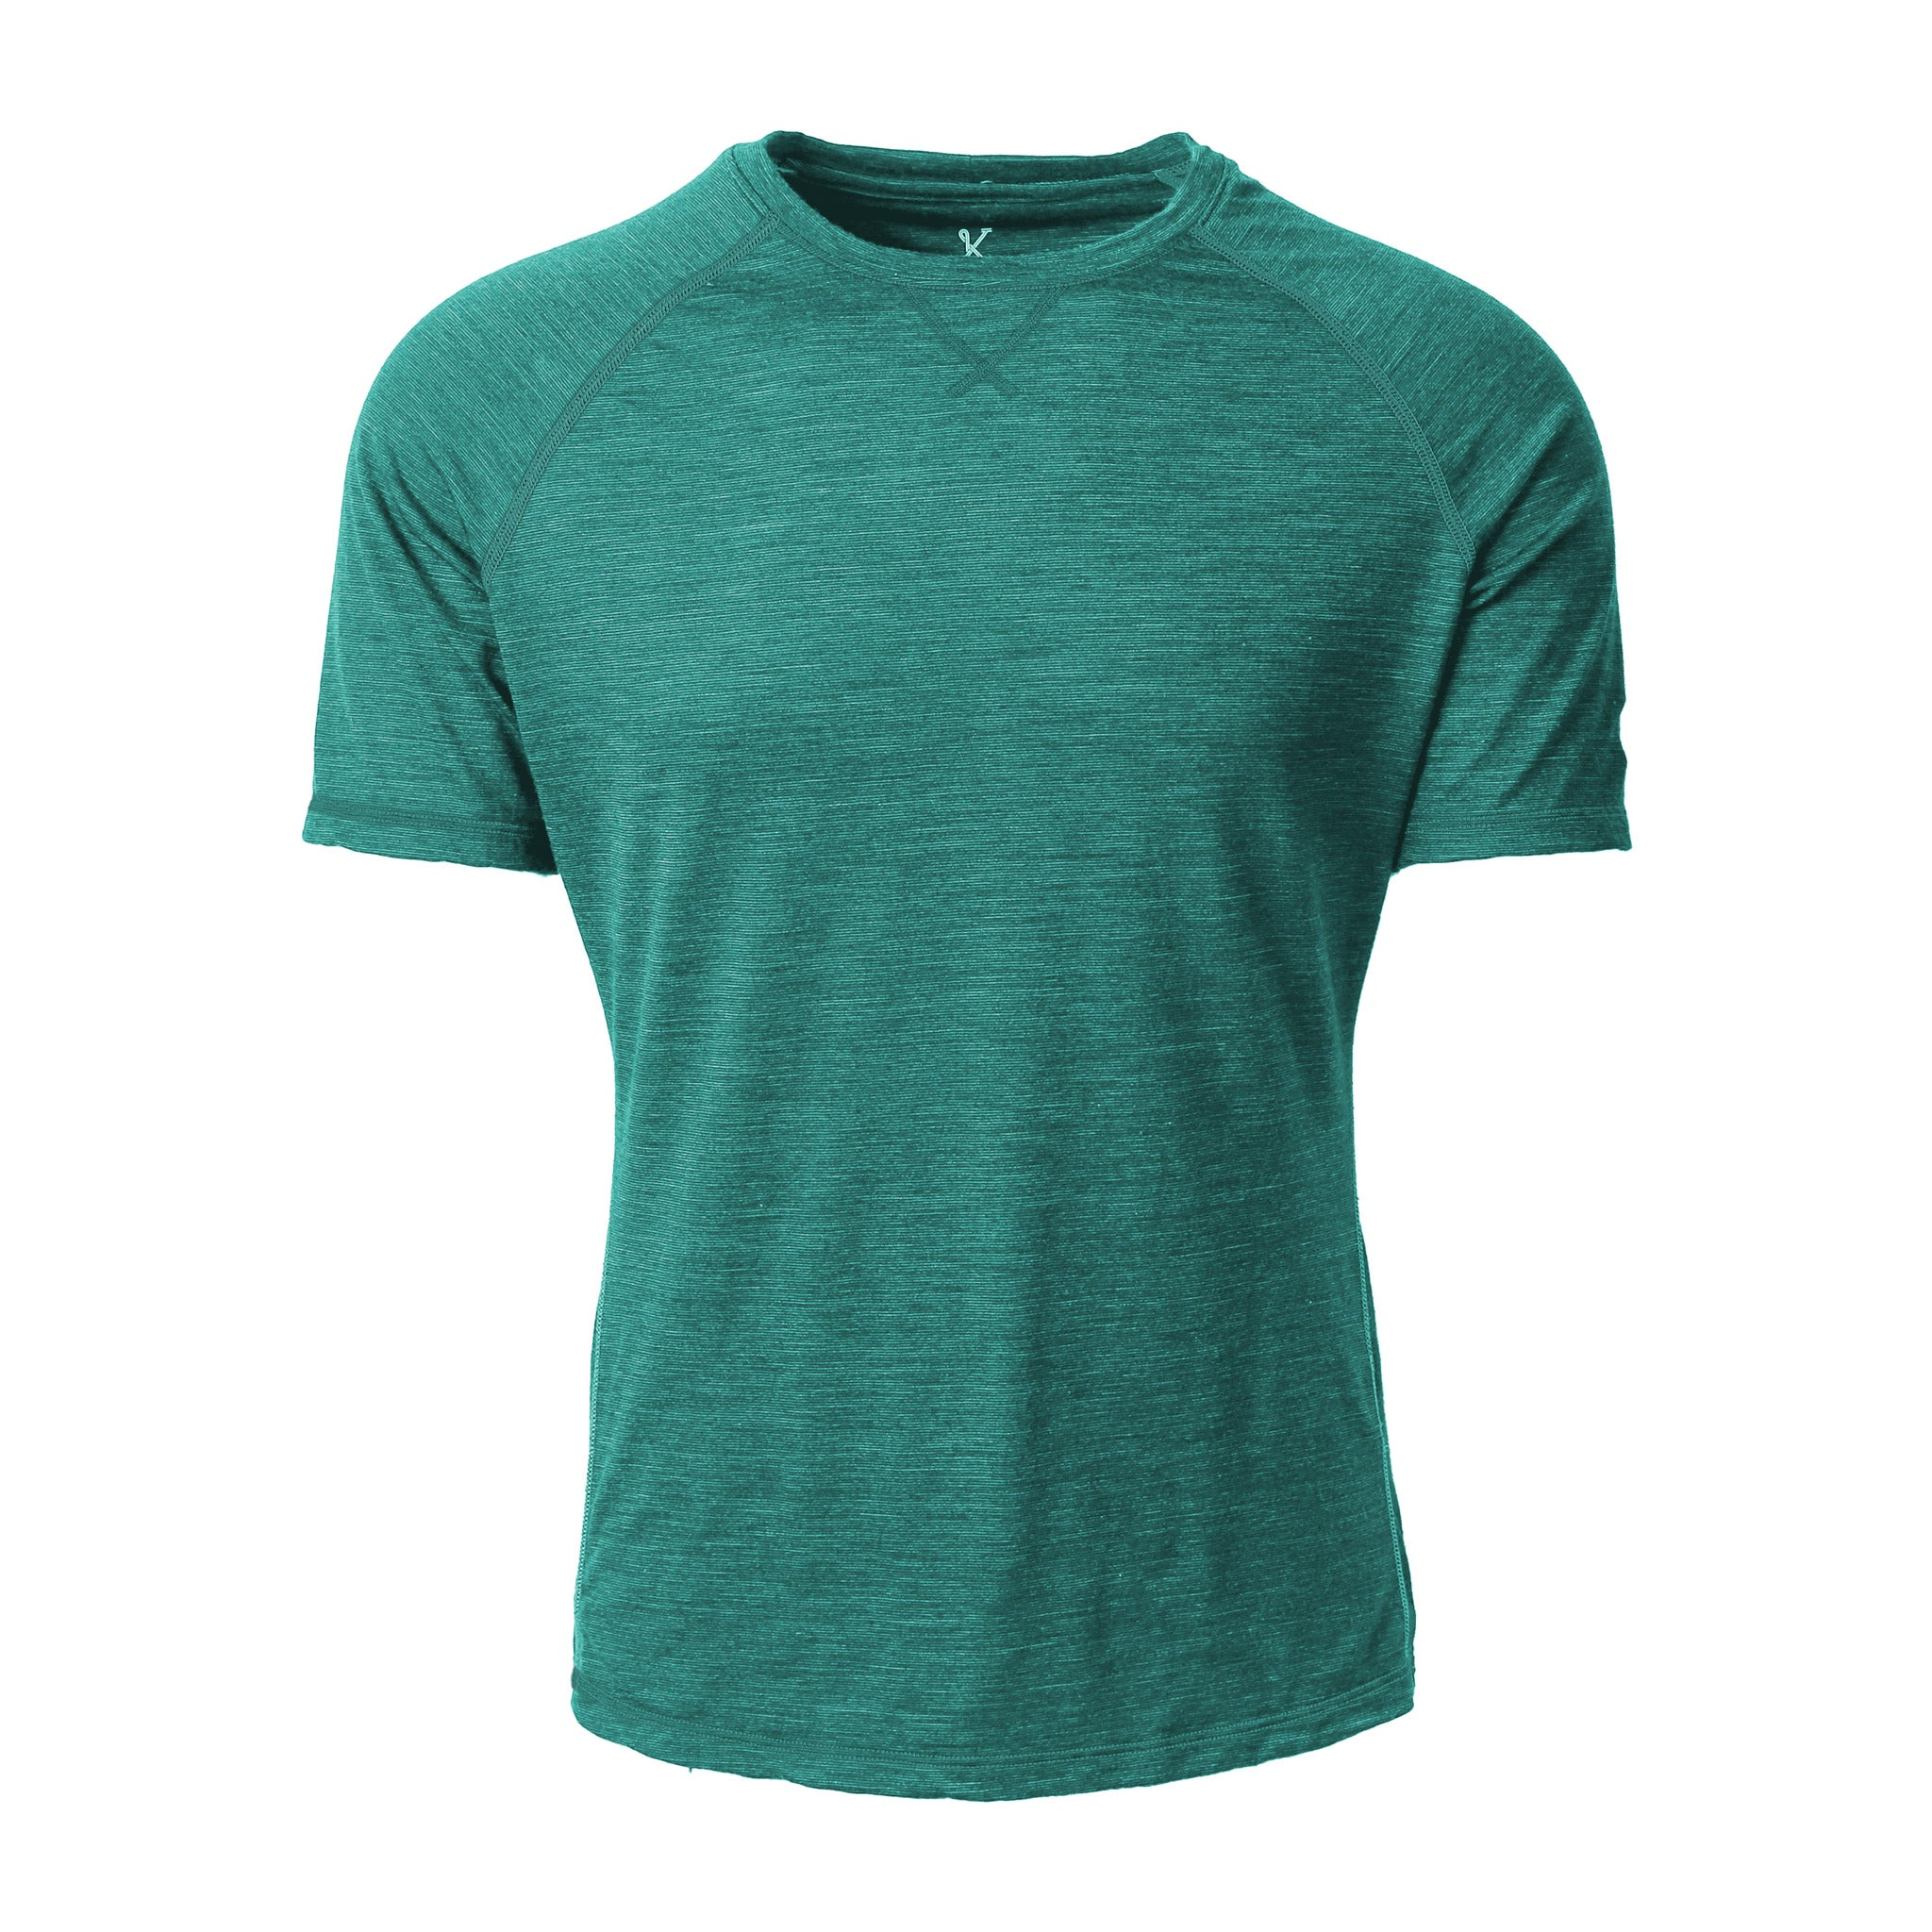 Mullinax Merino Tee Russian River Heather